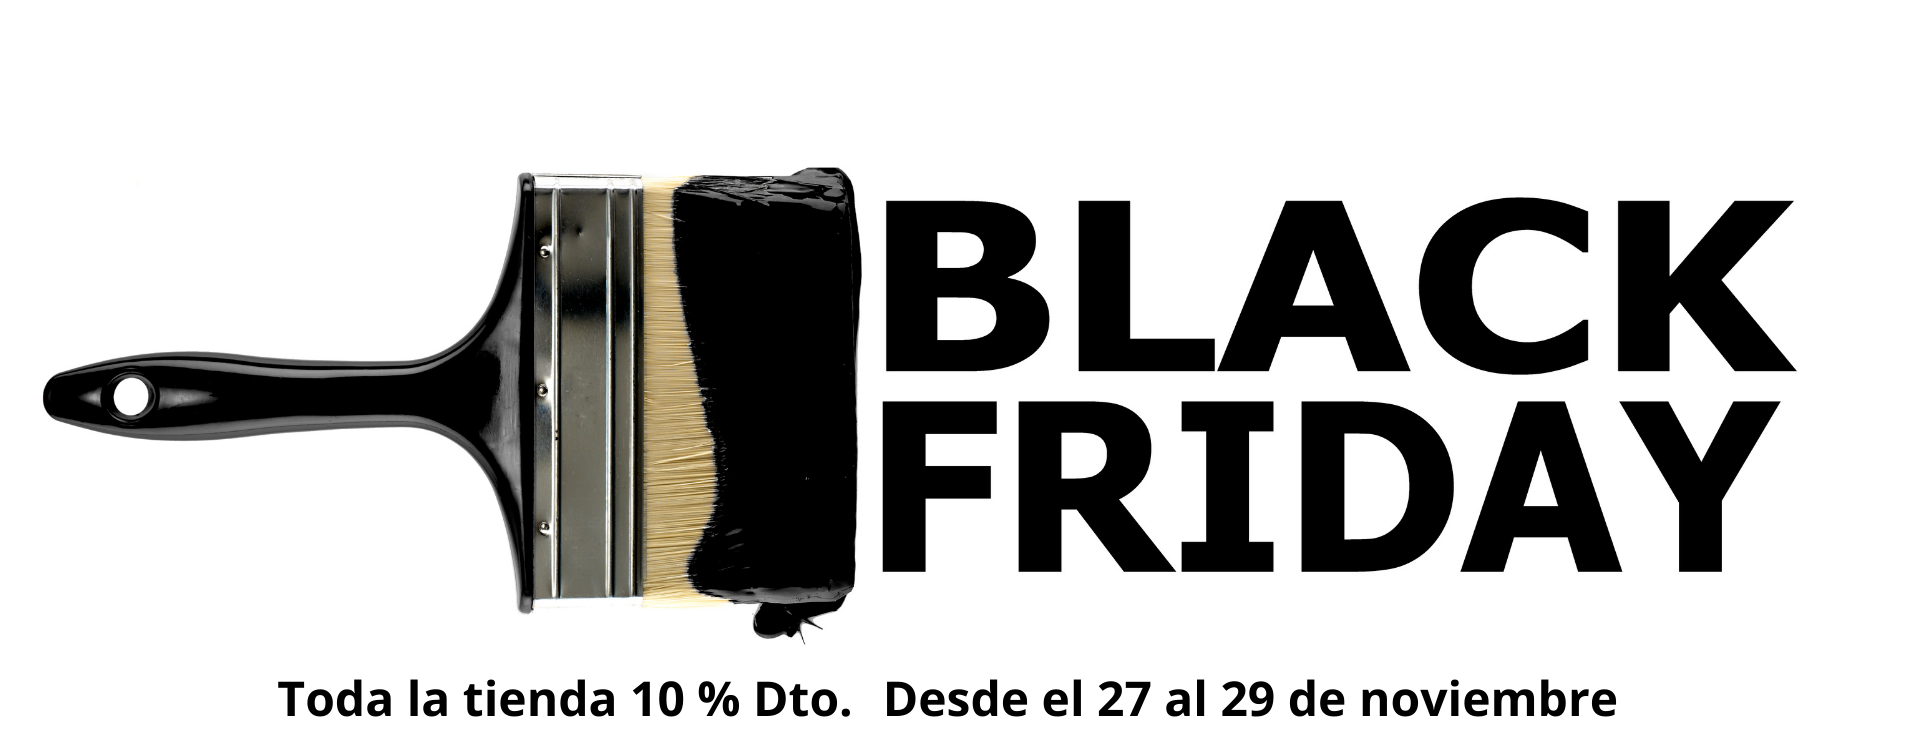 bricotex-black-friday-pinturas